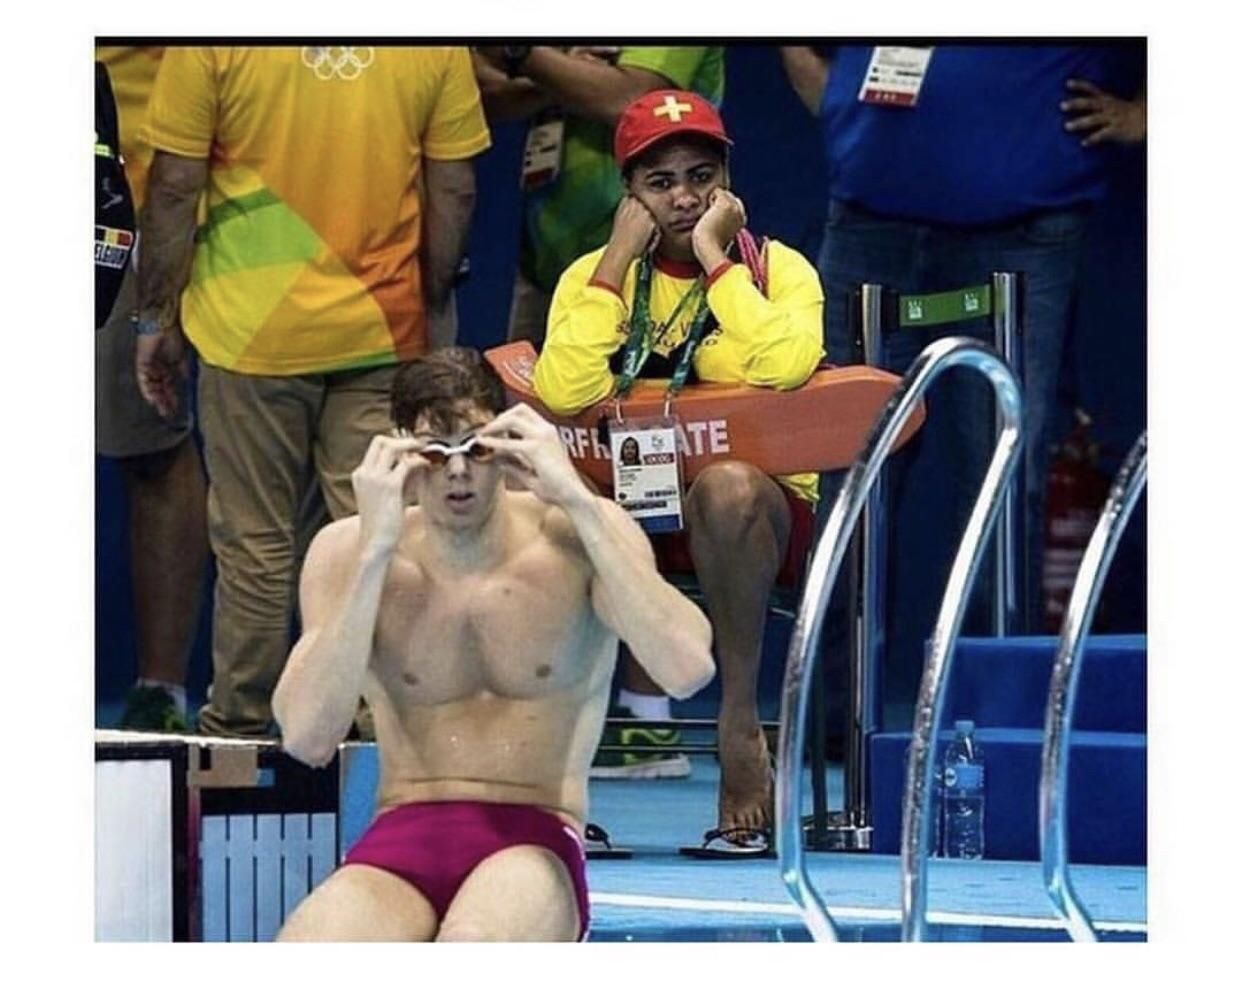 The worlds most useless job, A lifeguard at the Olympics